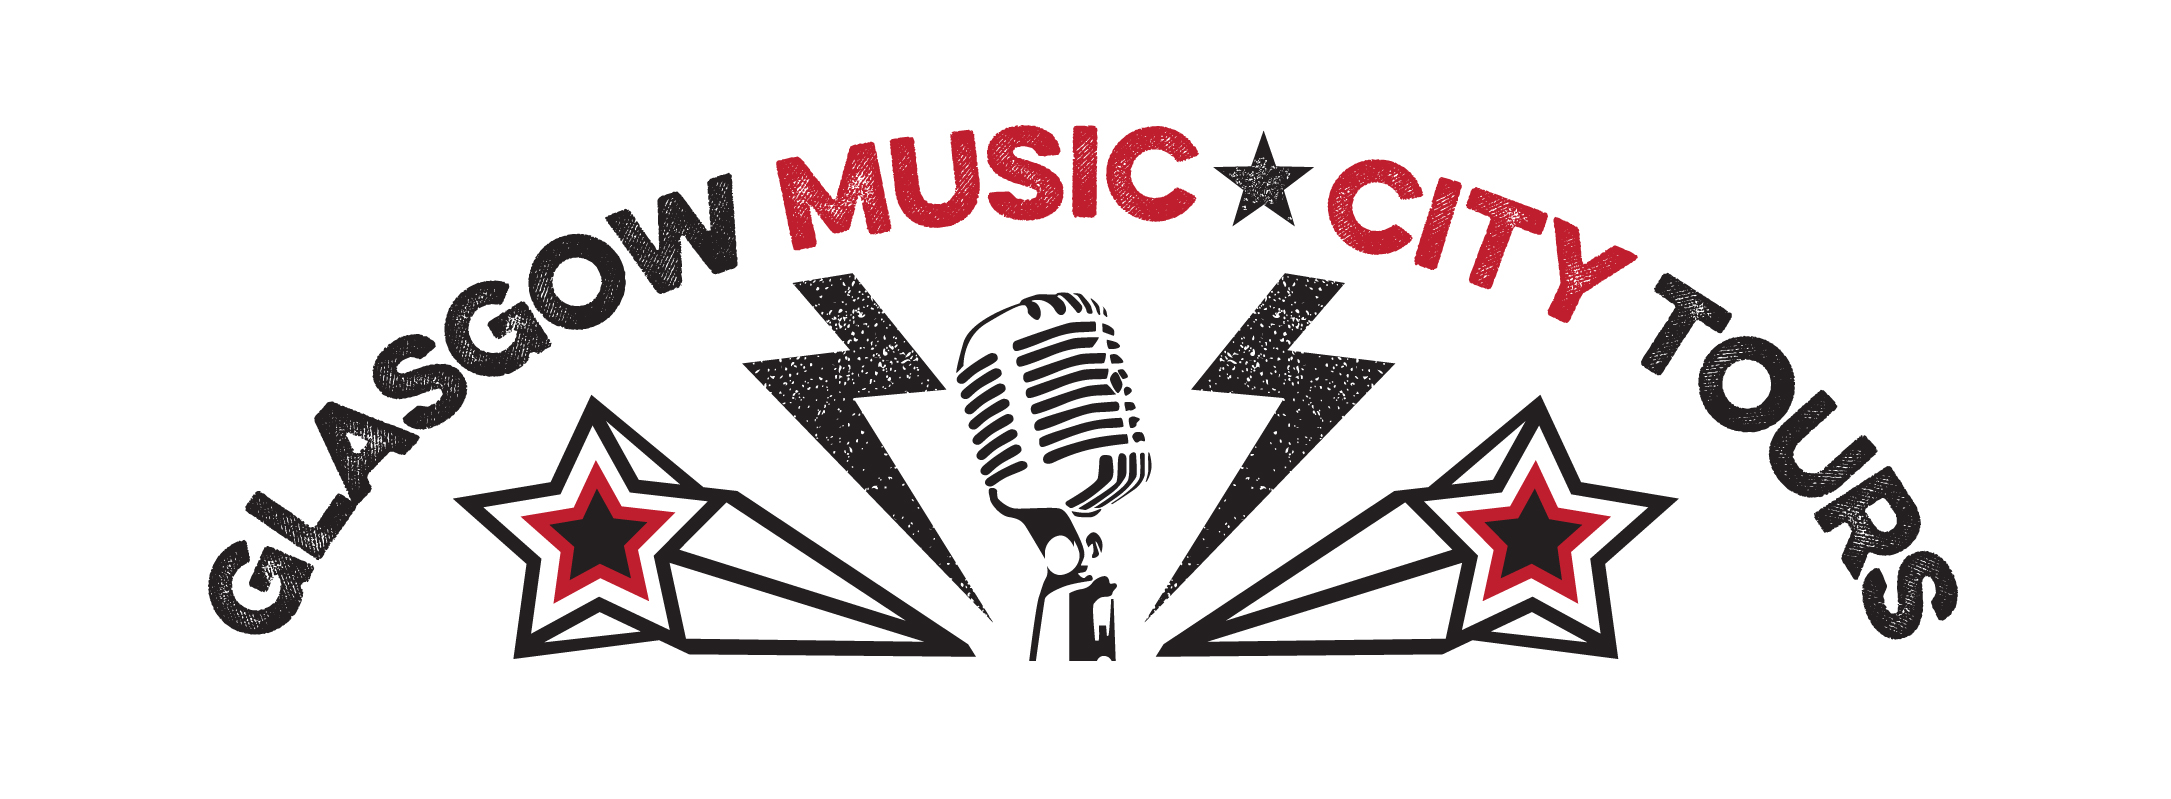 Glasgow Music City Tours logo